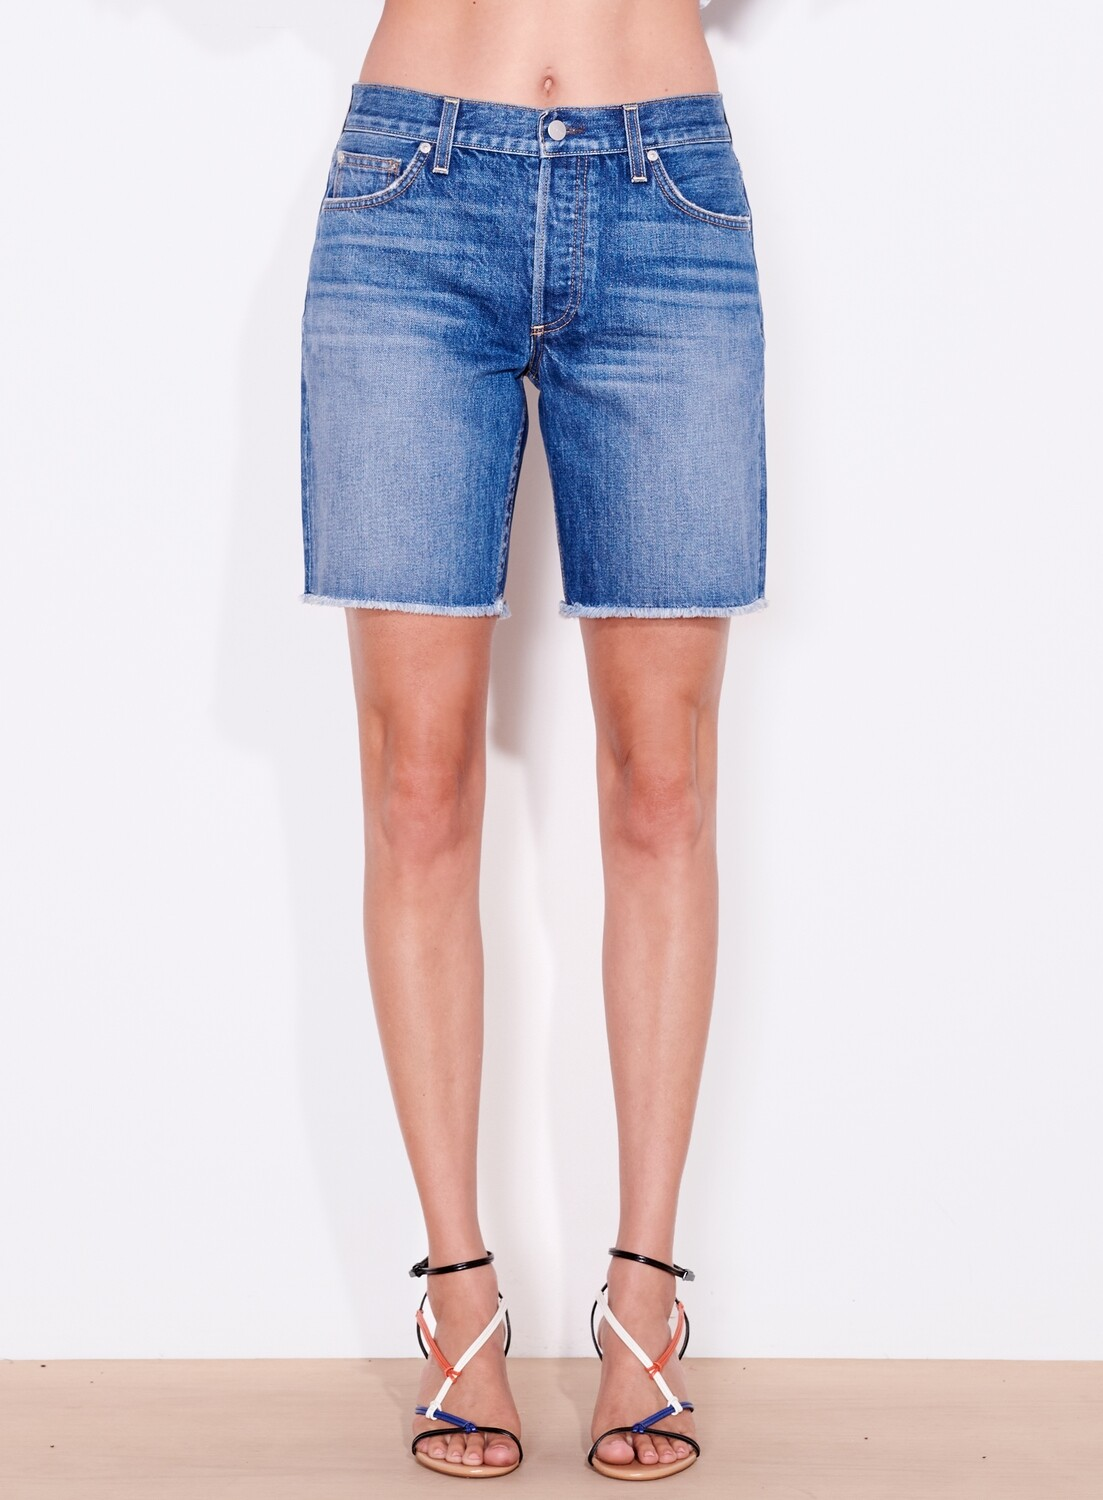 Sundry, Slouchy Short with Hearts, Dark Wash